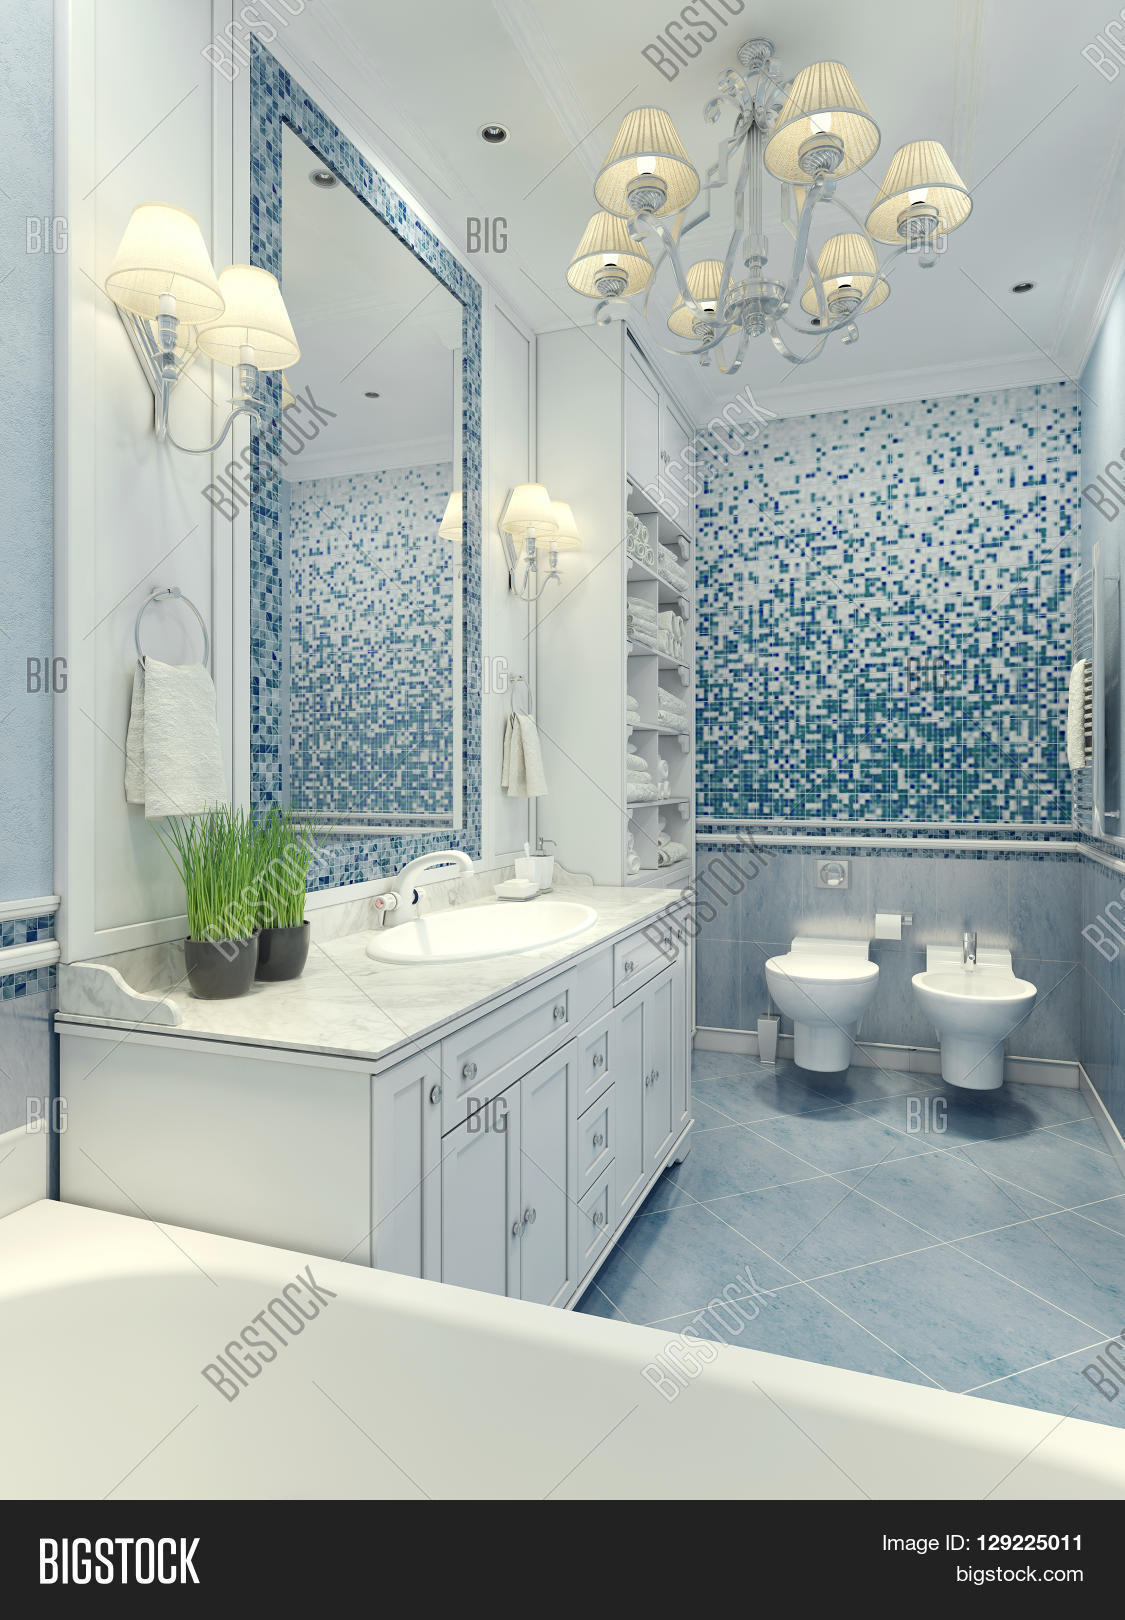 Bright bathroom classic style  Luxury chandelier mirror white furniture and  built in sink toilet. Bright bathroom classic style  Luxury chandelier mirror white